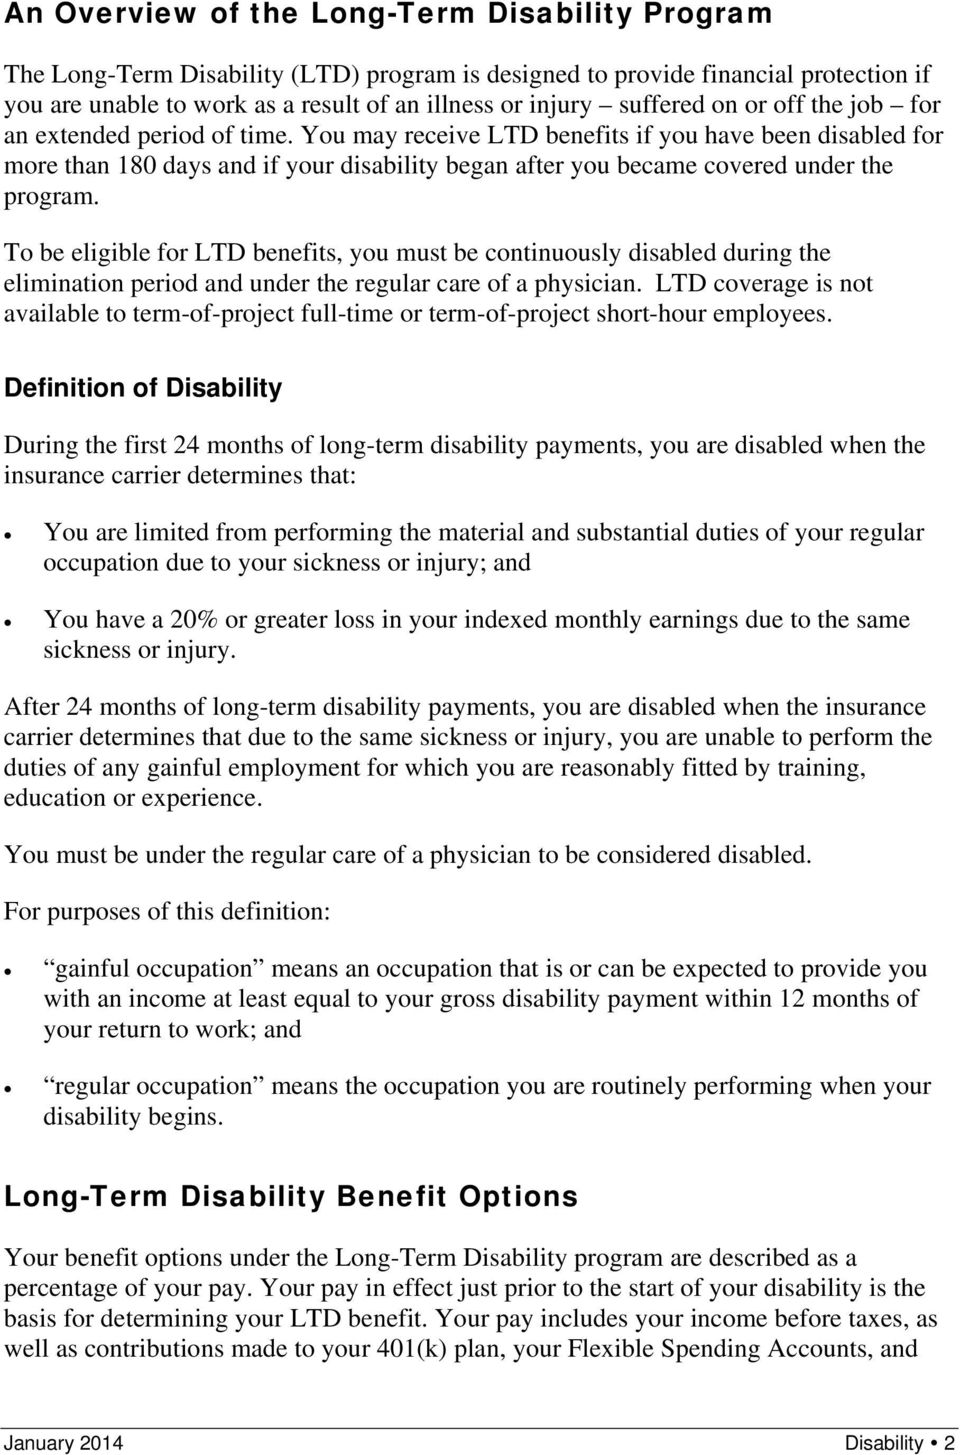 You may receive LTD benefits if you have been disabled for more than 180 days and if your disability began after you became covered under the program.